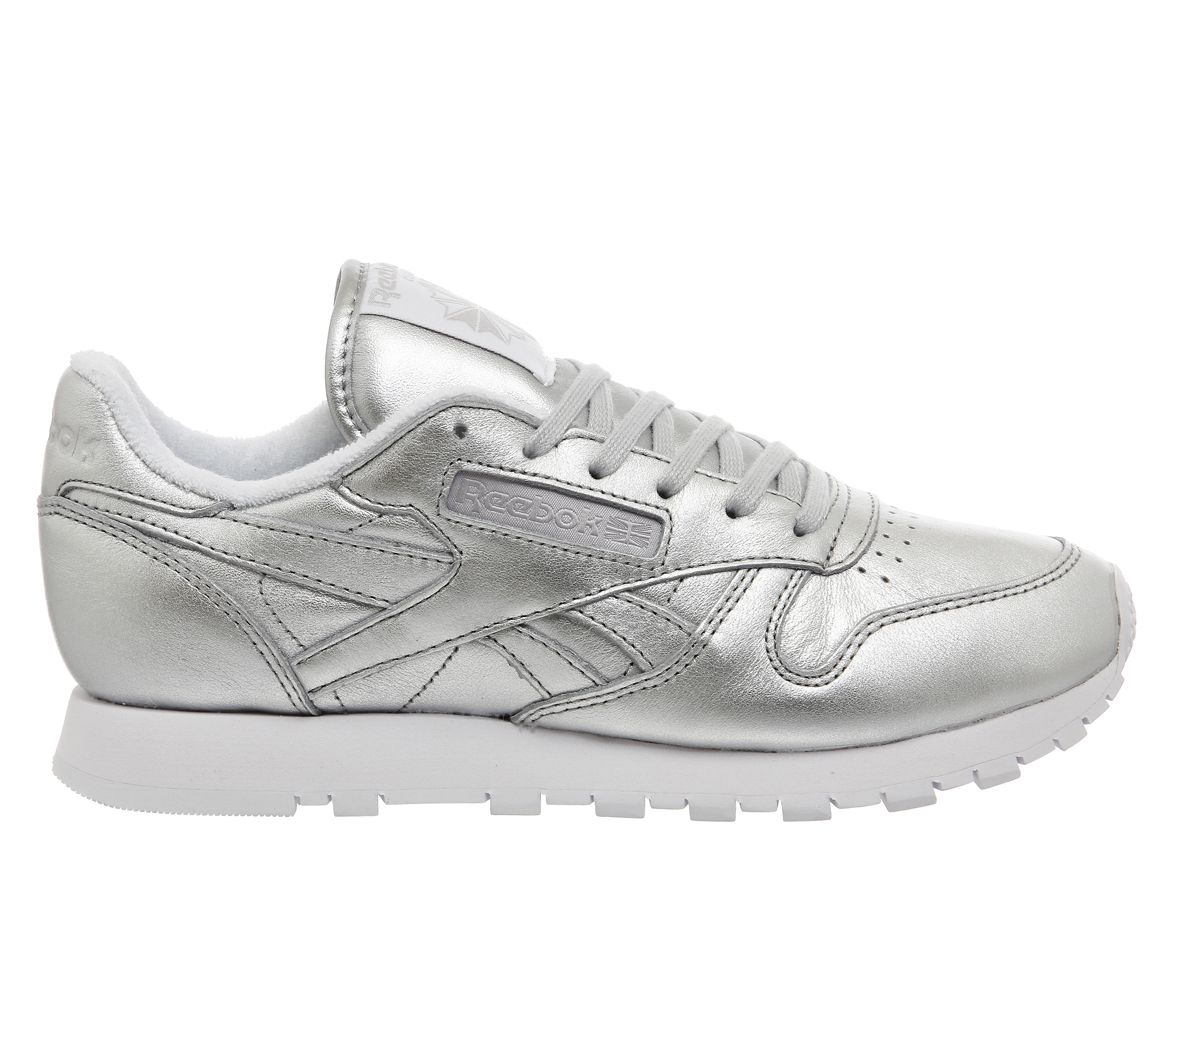 745c30cfcd8c61 Buy Presence Silver Face Reebok Classic Leather Trainers (W) from  OFFICE.co.uk.